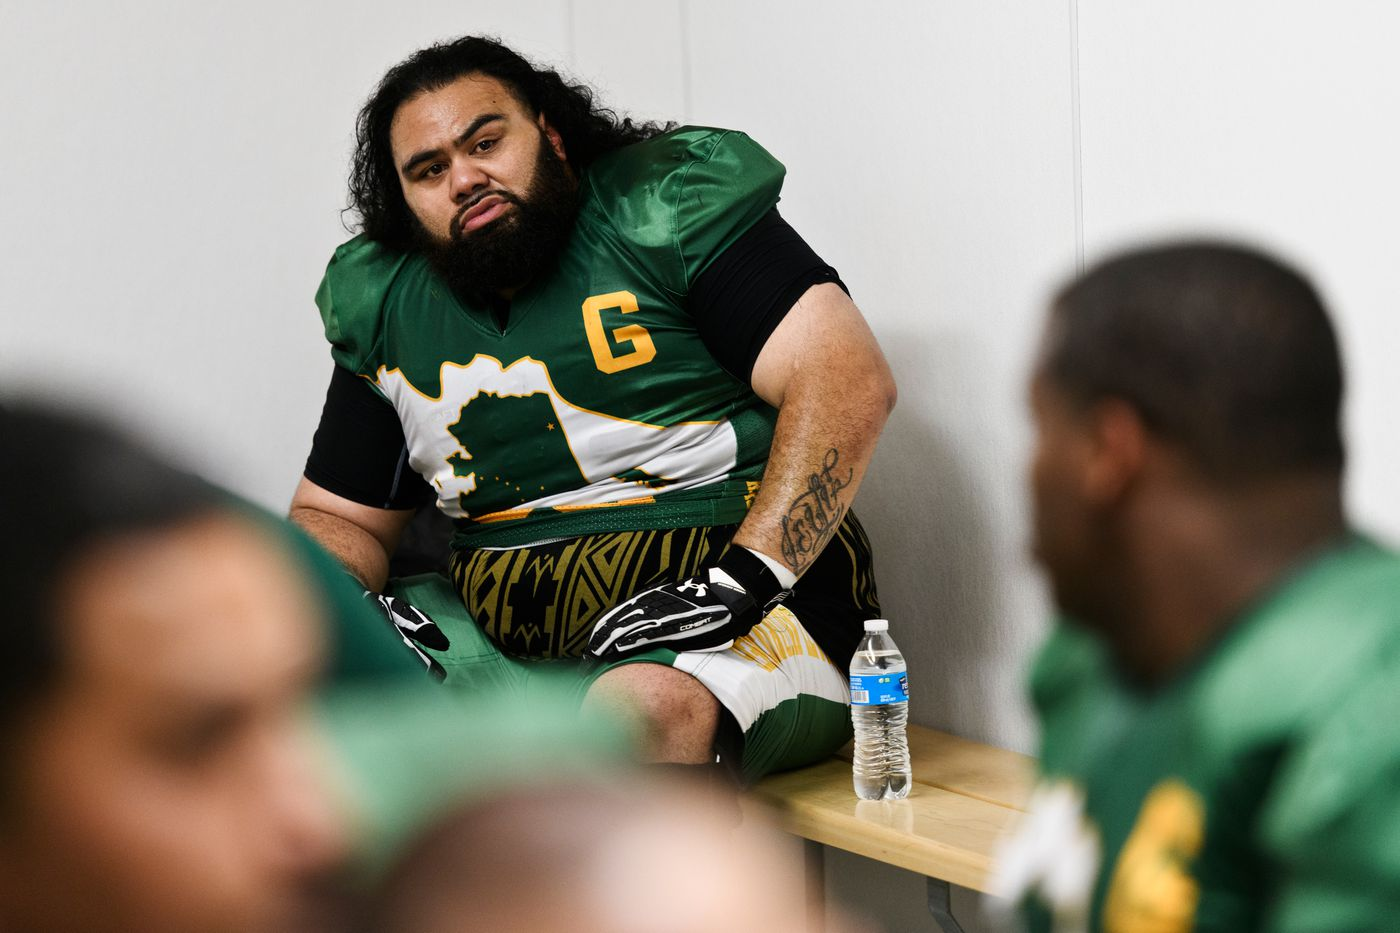 Demetrius Lalofau talks with a coach in the locker room at halftime of a game against the Anchorage Cowboys on Sept. 3, 2018. (Marc Lester / ADN)